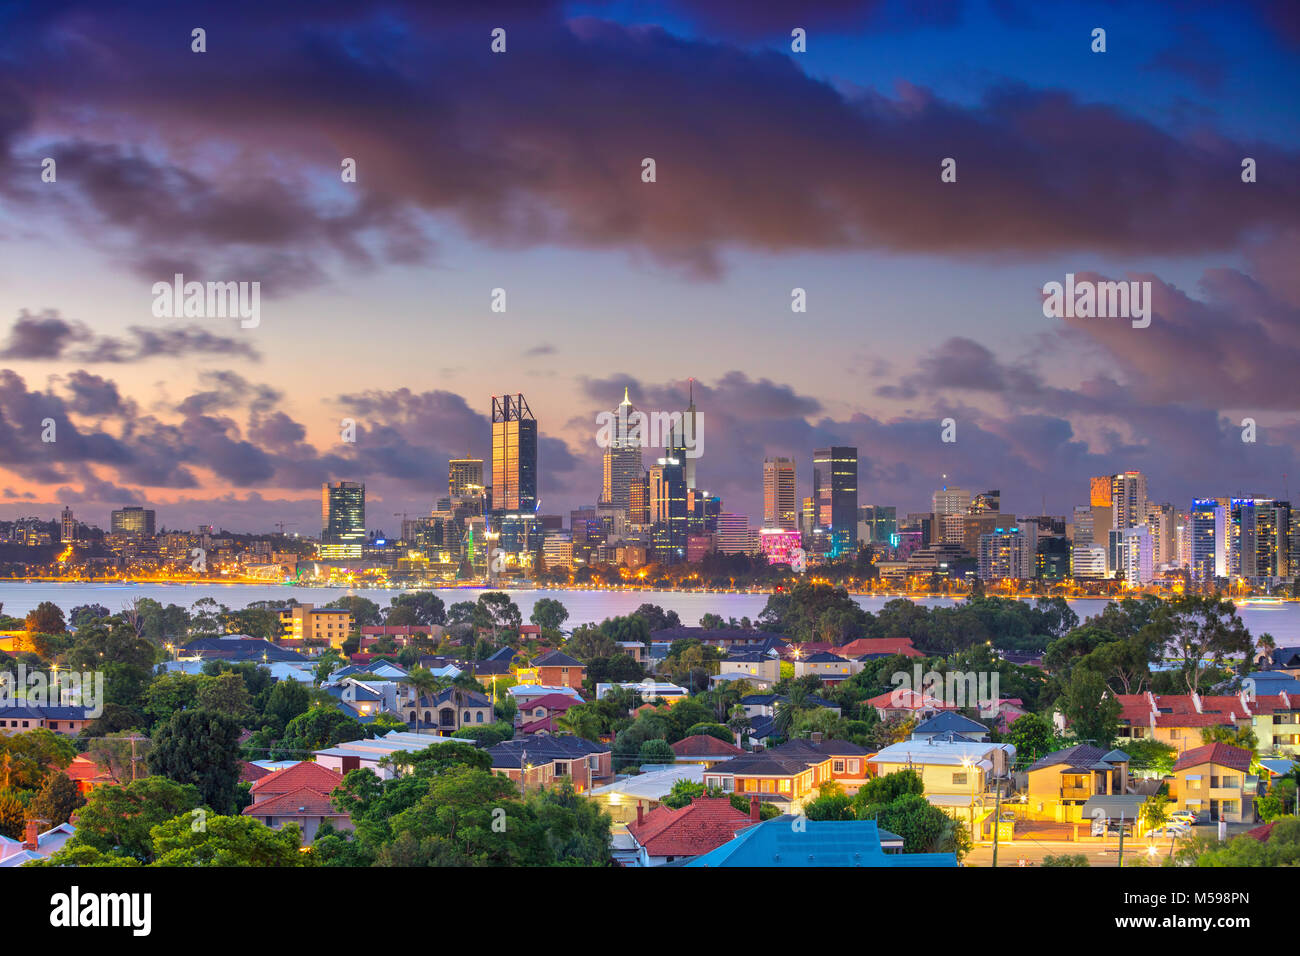 Perth. Aerial cityscape image of Perth skyline, Australia during dramatic sunset. - Stock Image